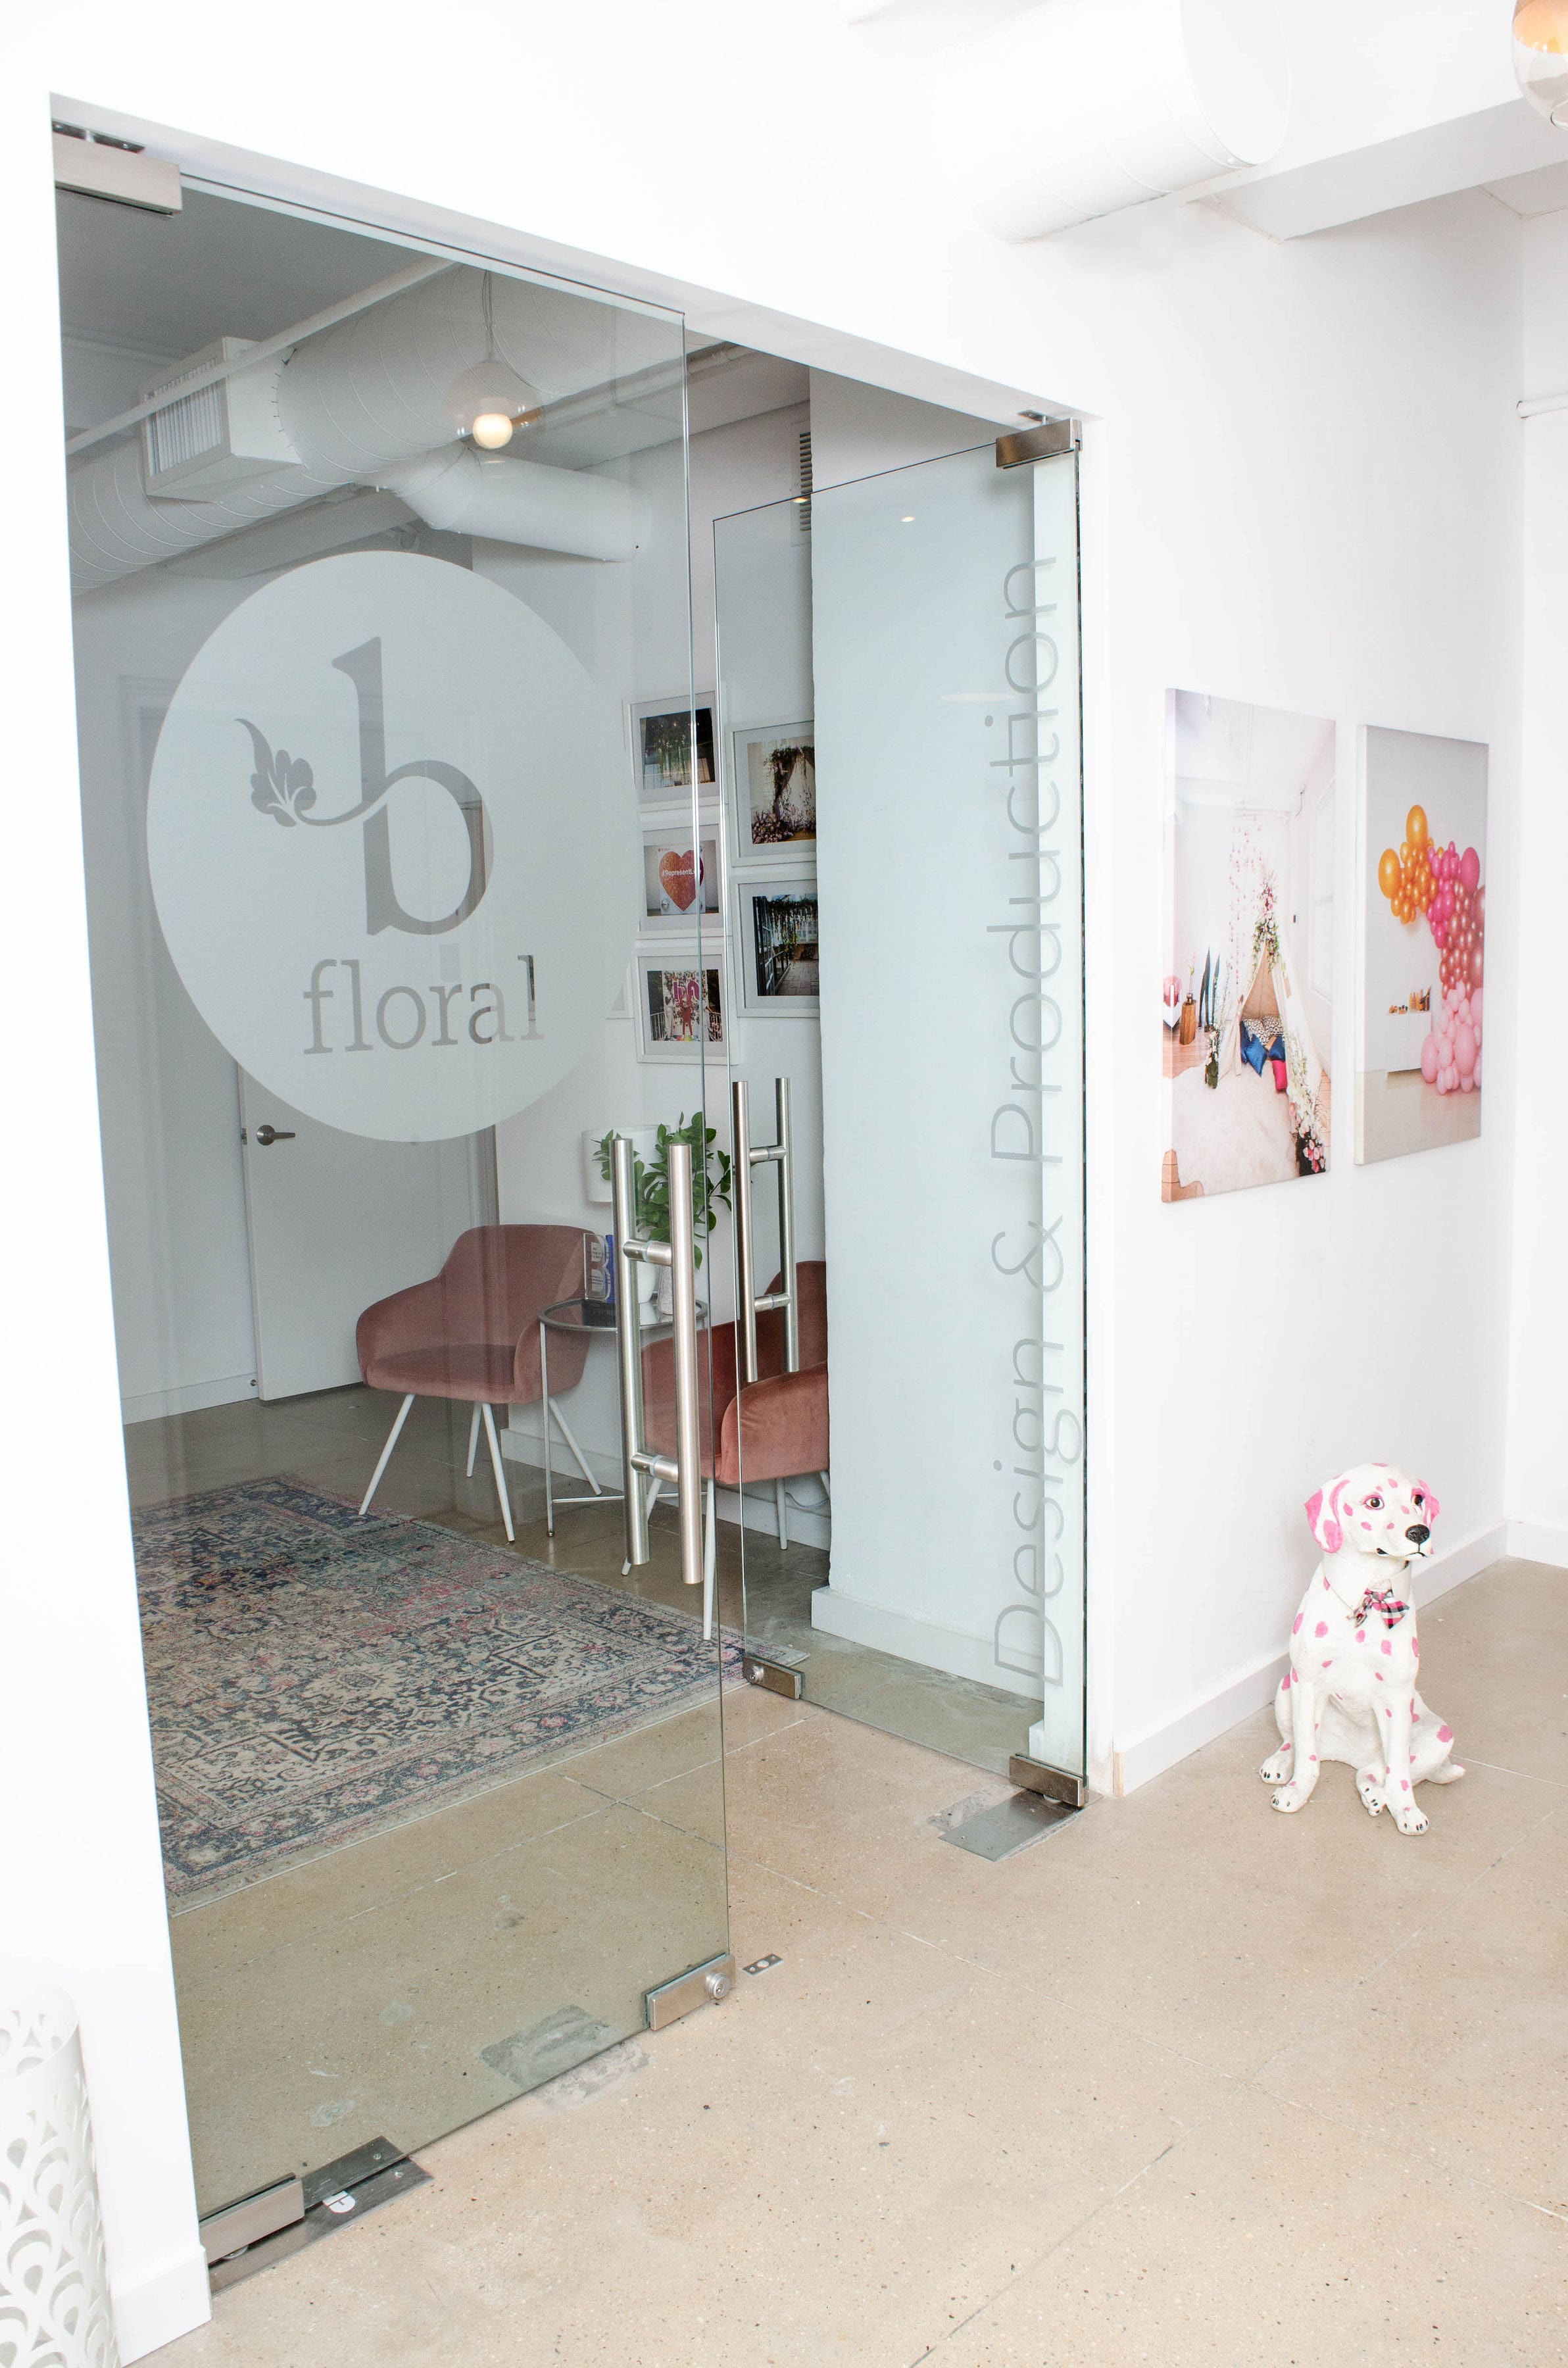 NEW - OFFICE - SPACE - MANHATTAN - COOL - OPEN - RECEPTION - B FLORAL